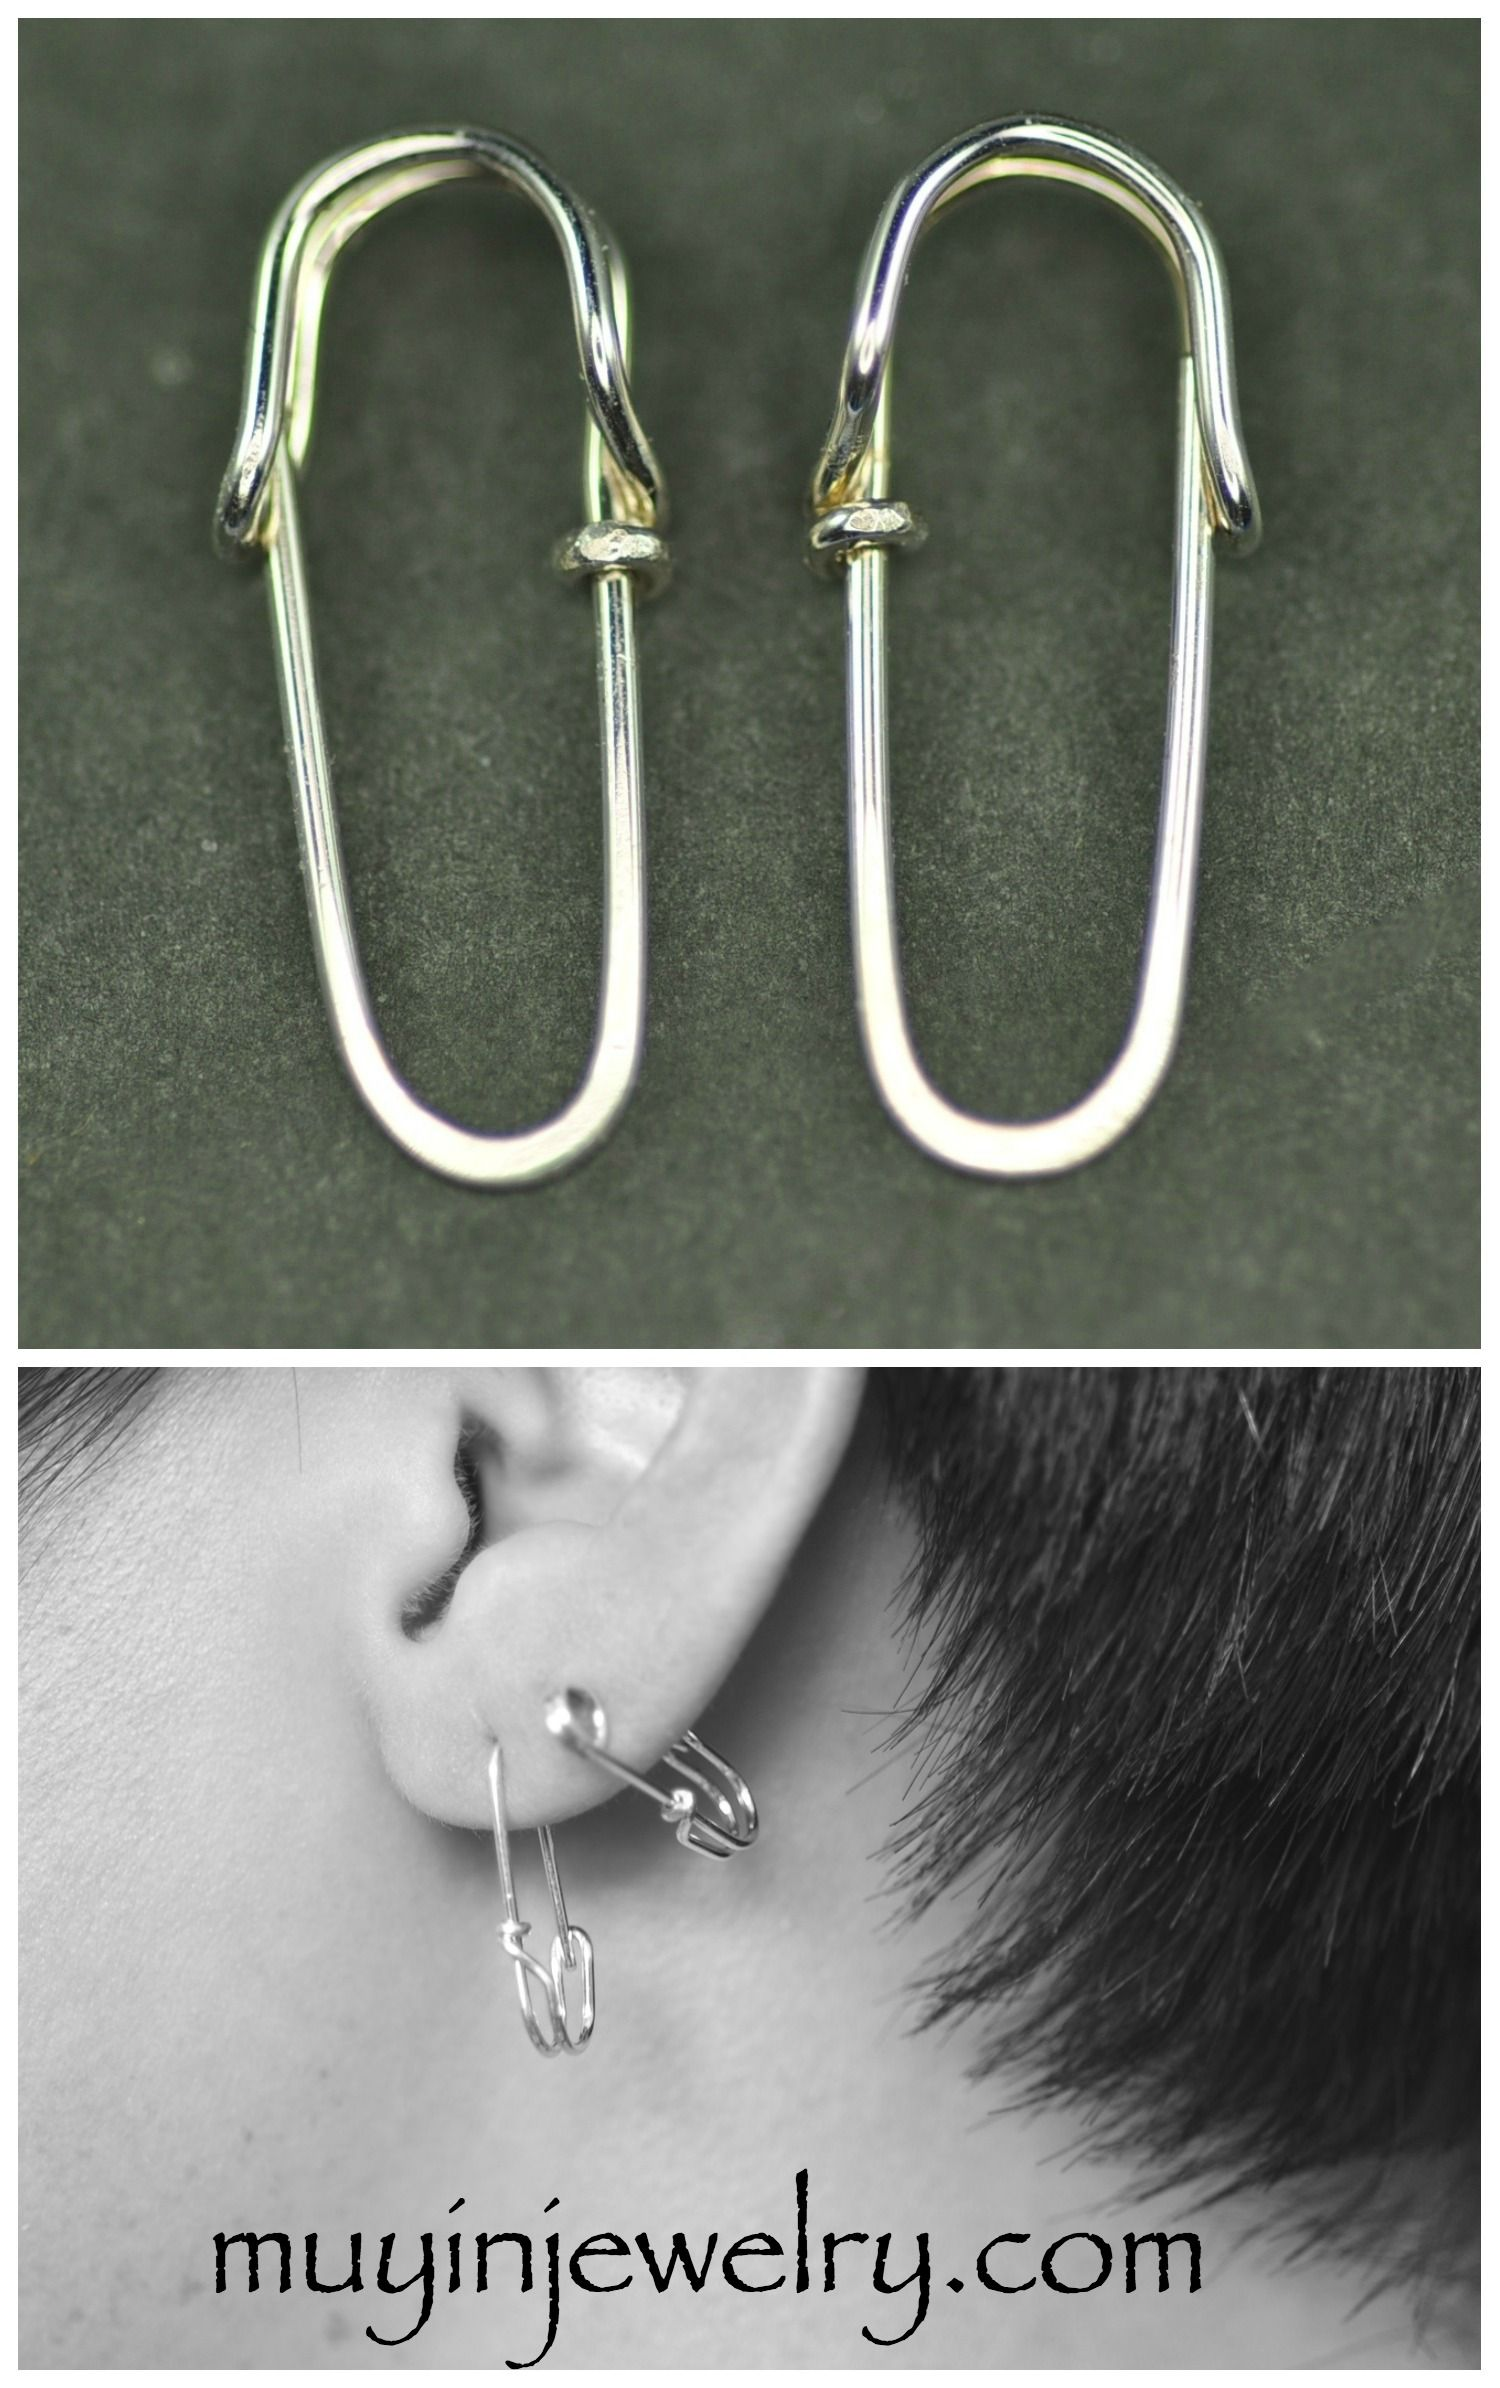 Super Cute Safety Pin Earrings